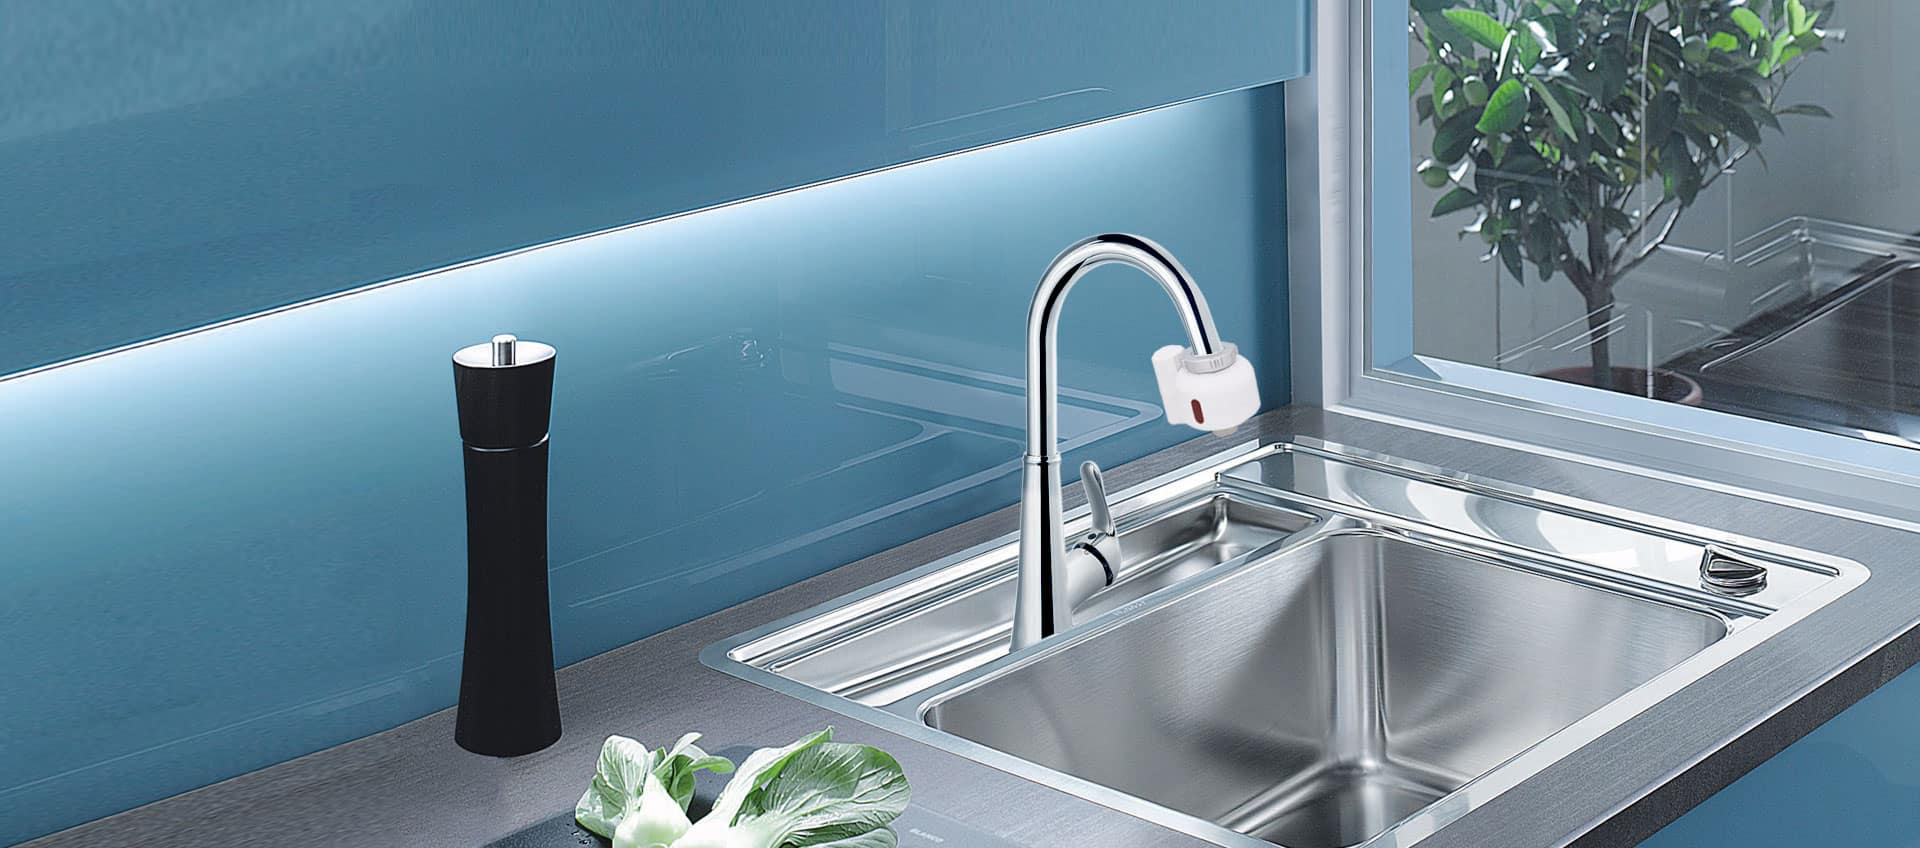 Diy touch free kitchen faucet solution with touchless device add on normal faucet